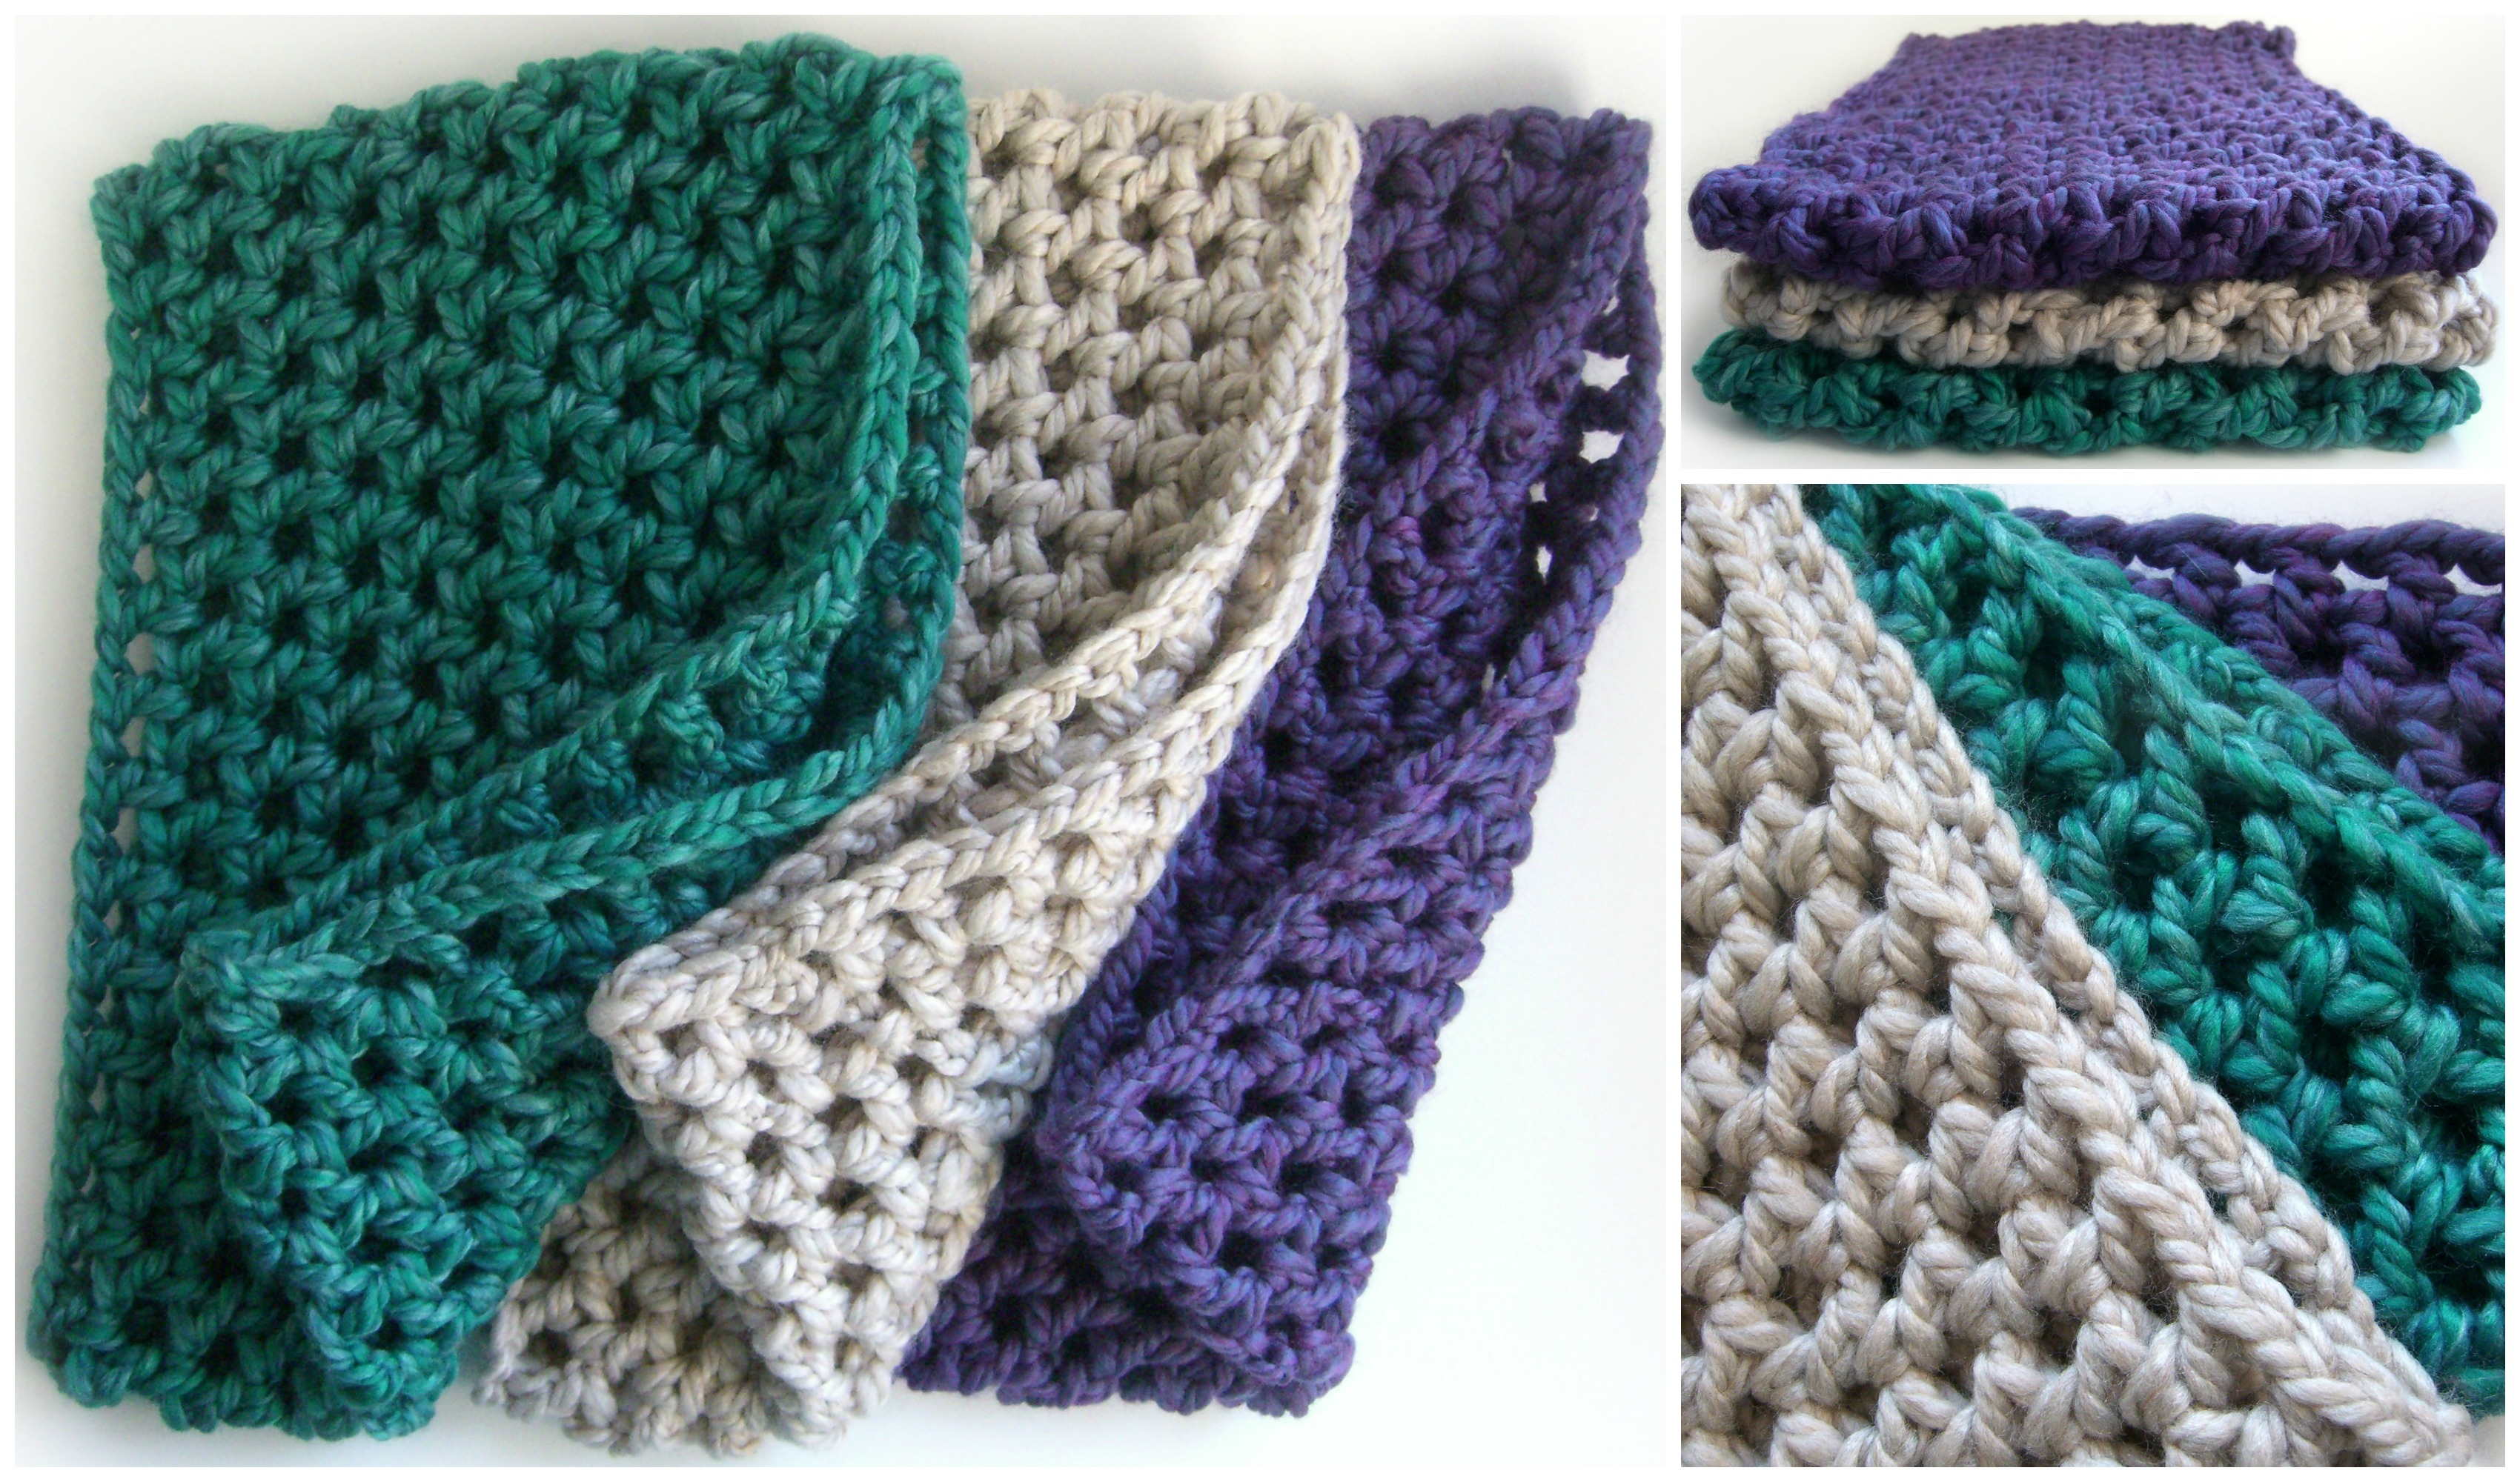 Crocheted cowls for the family | hookabee